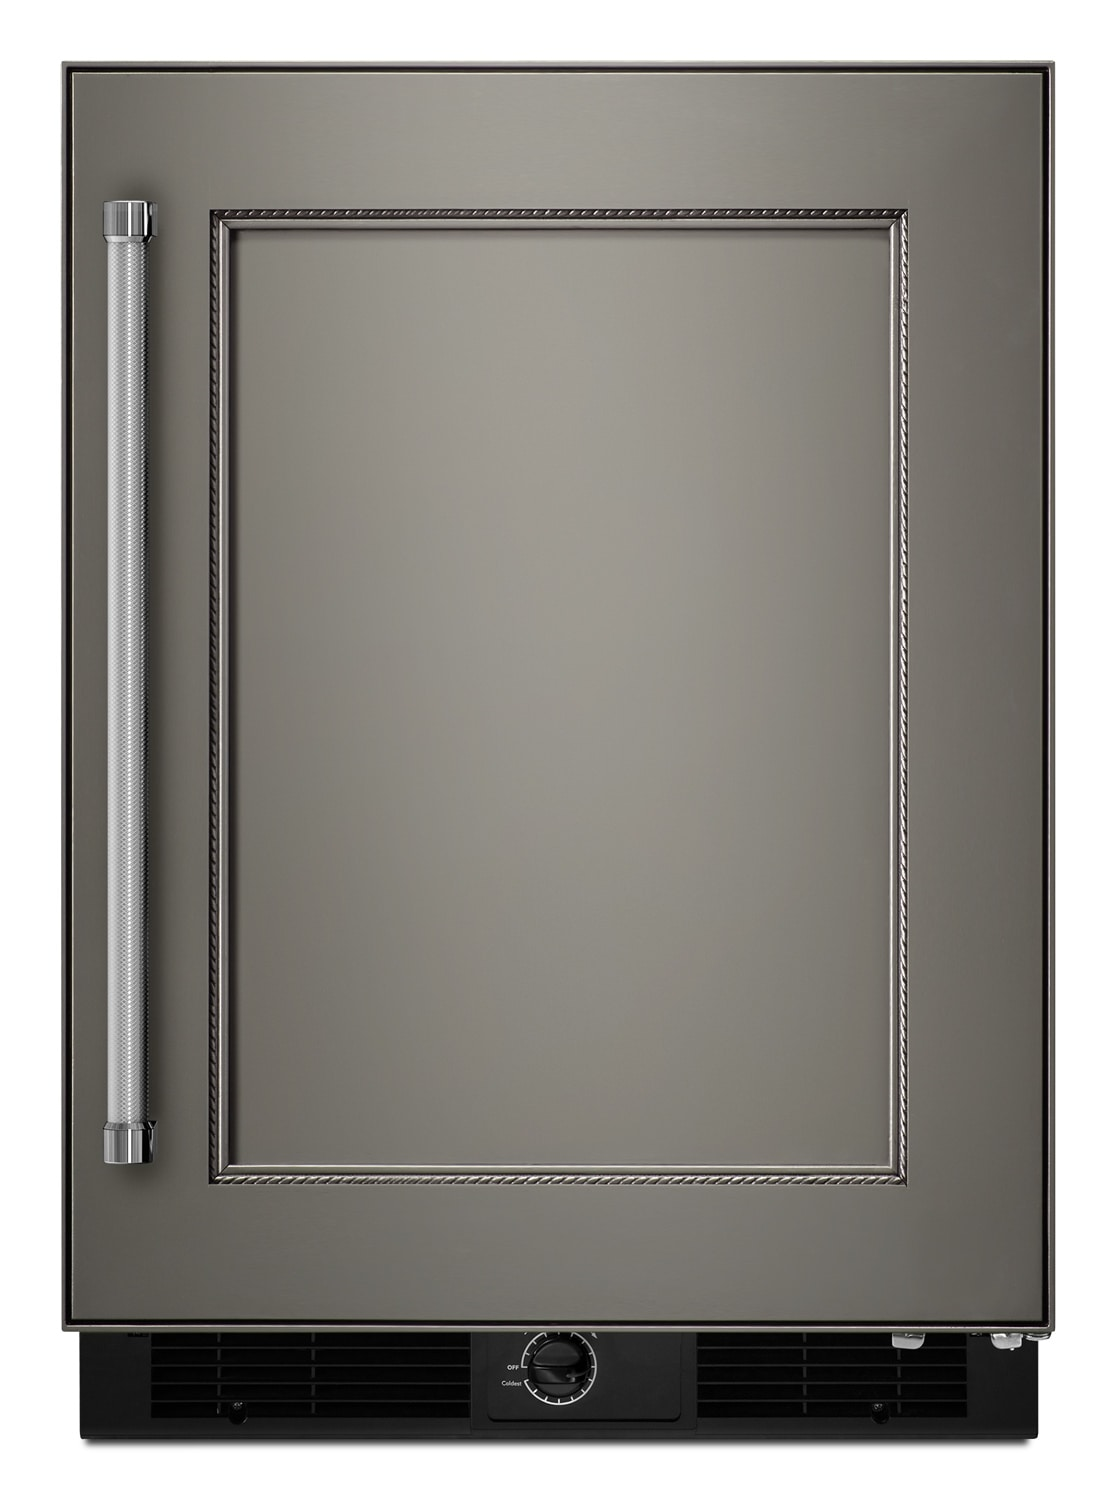 Refrigerators and Freezers - KitchenAid 4.9 Cu. Ft.  Undercounter Refrigerator with Right Door Swing - Panel Ready